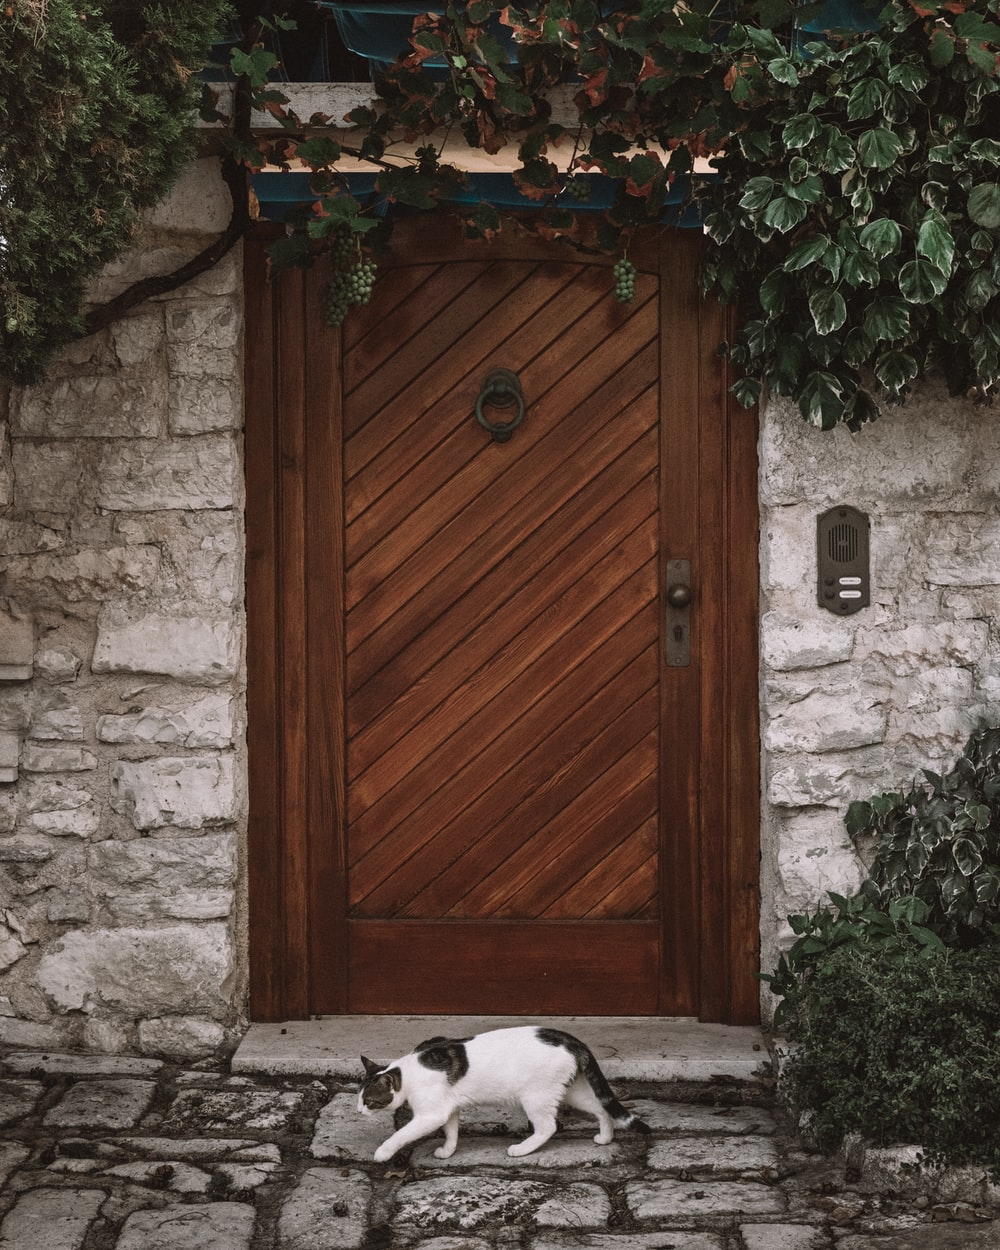 white and black cat walking next to brown wooden door